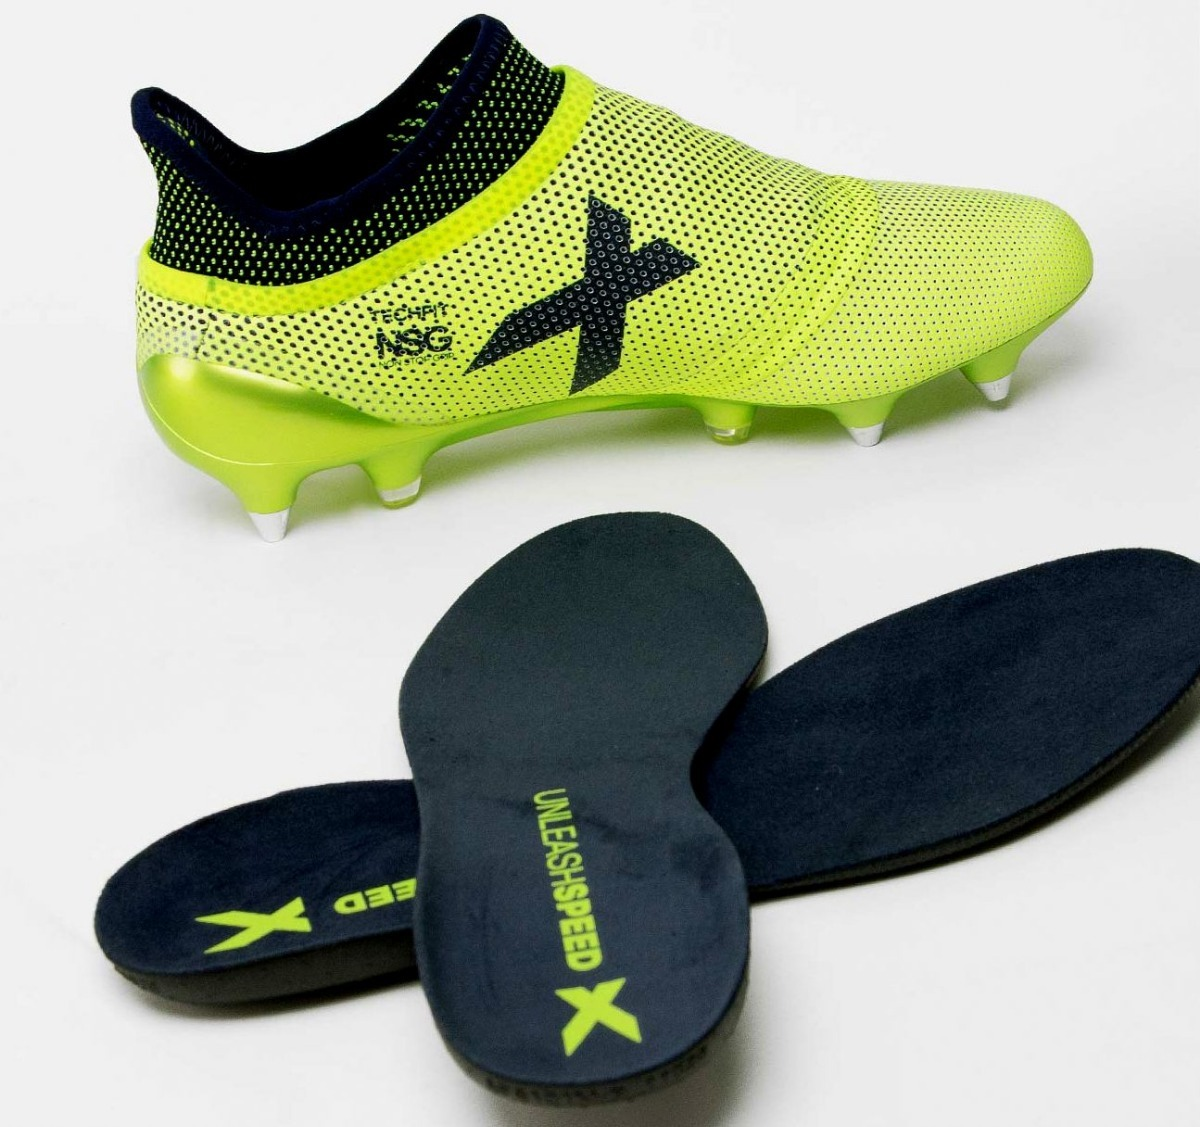 online retailer uk cheap sale beauty Botines adidas X 17+ Purespeed Sg Mx Solar Yellow/legend Ink